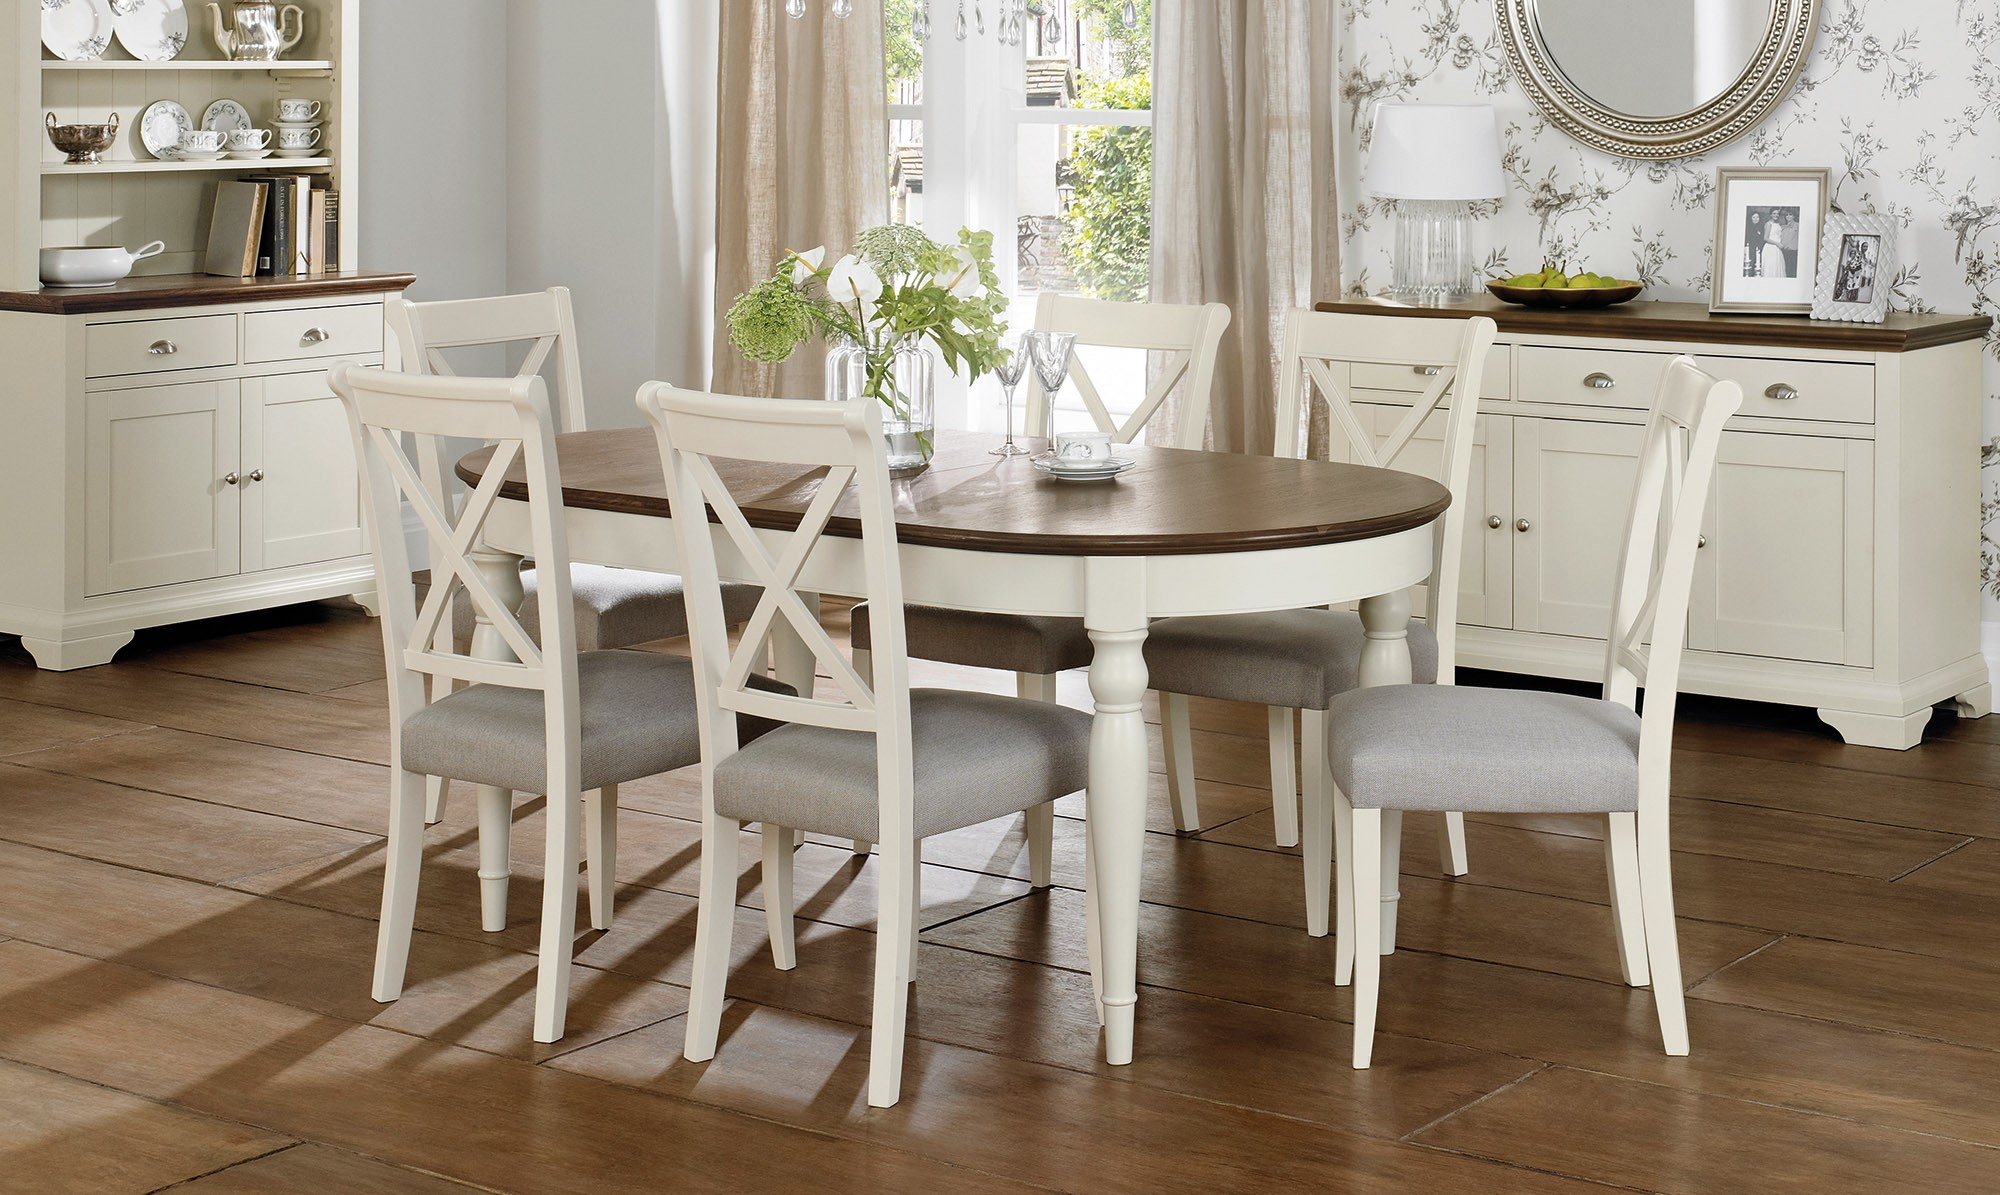 Extending Dining Table: Right to have it in Your Dining Room